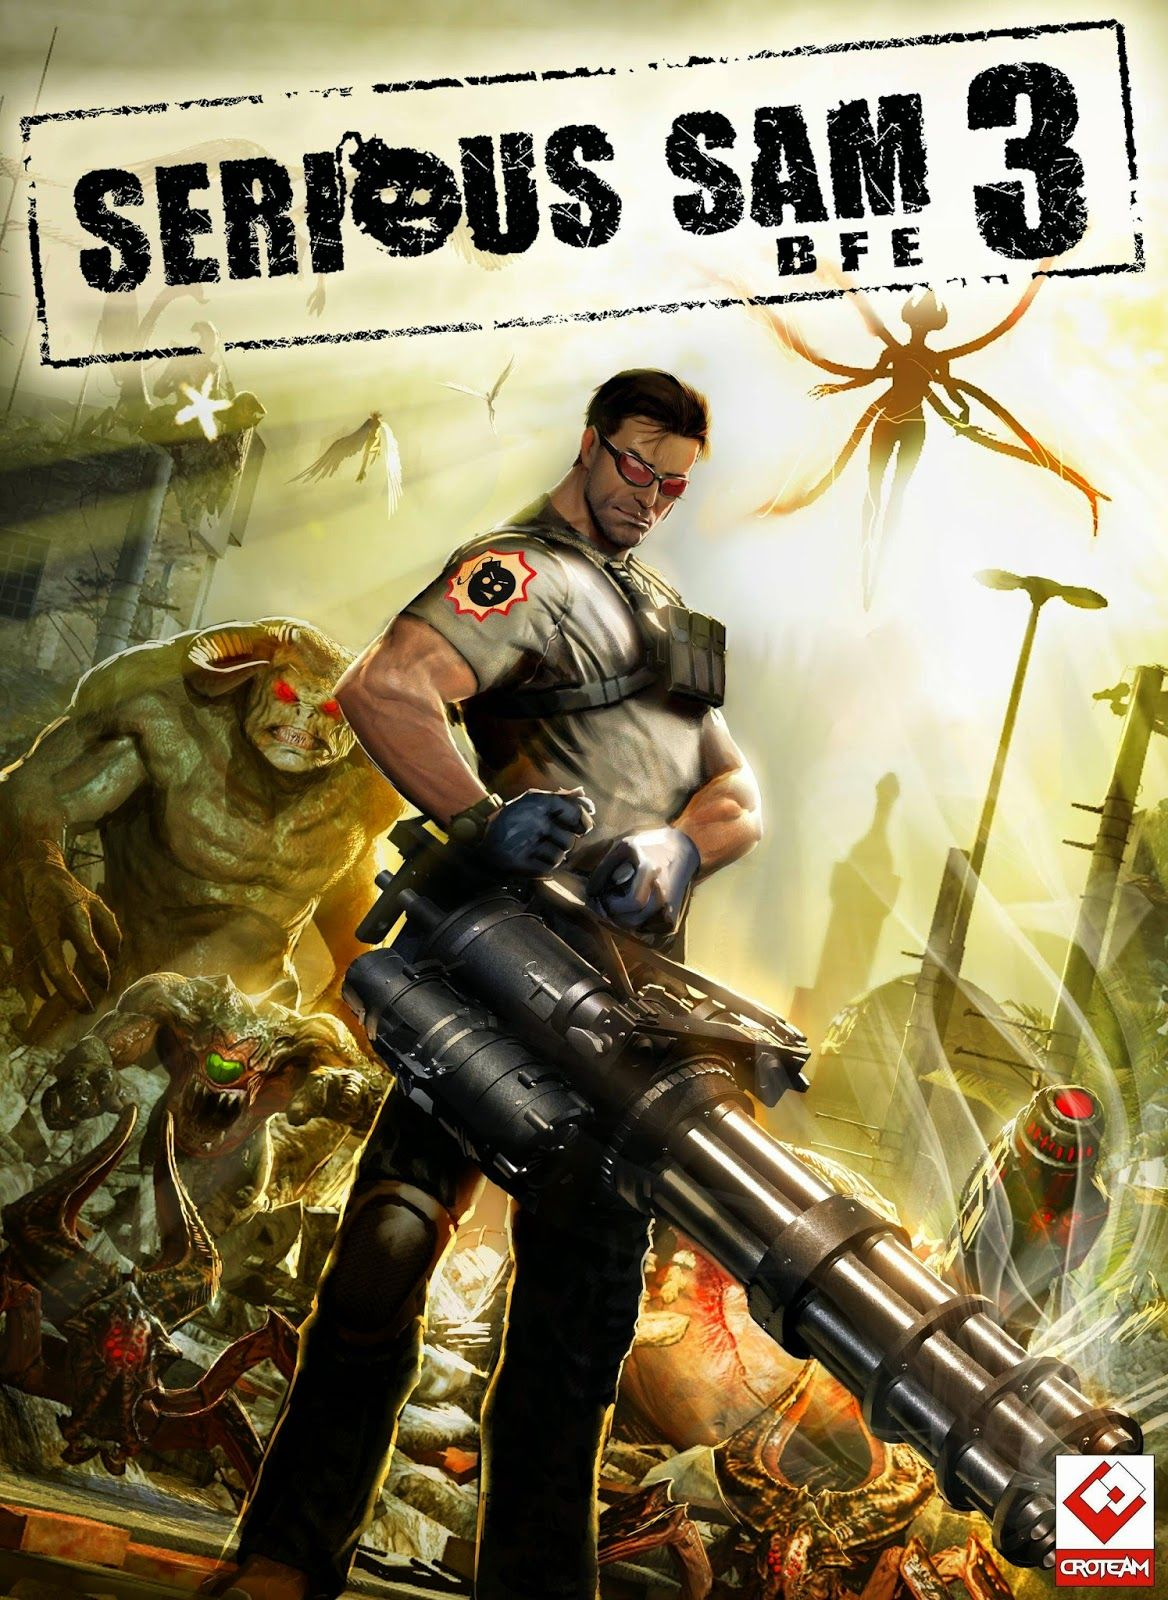 Serious Sam 3 BFE Repack PC Game Download free with single dlc